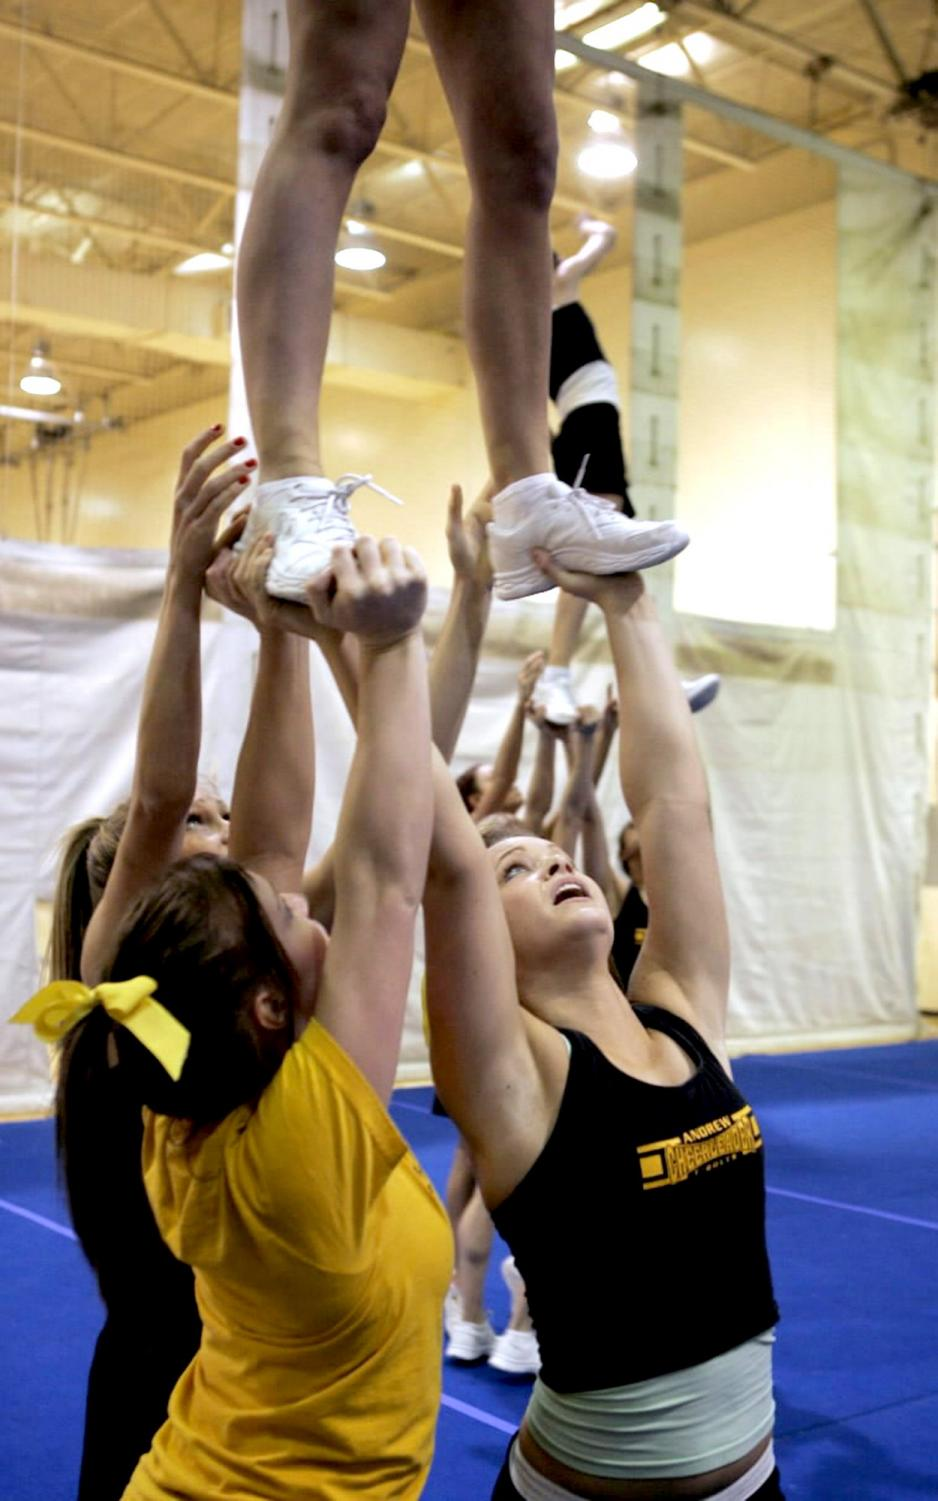 According to Live Science, there were 22,900 cheerleading-related injuries in the United States in 2000. (Terrence Antonio James/Chicago Tribune/KRT)